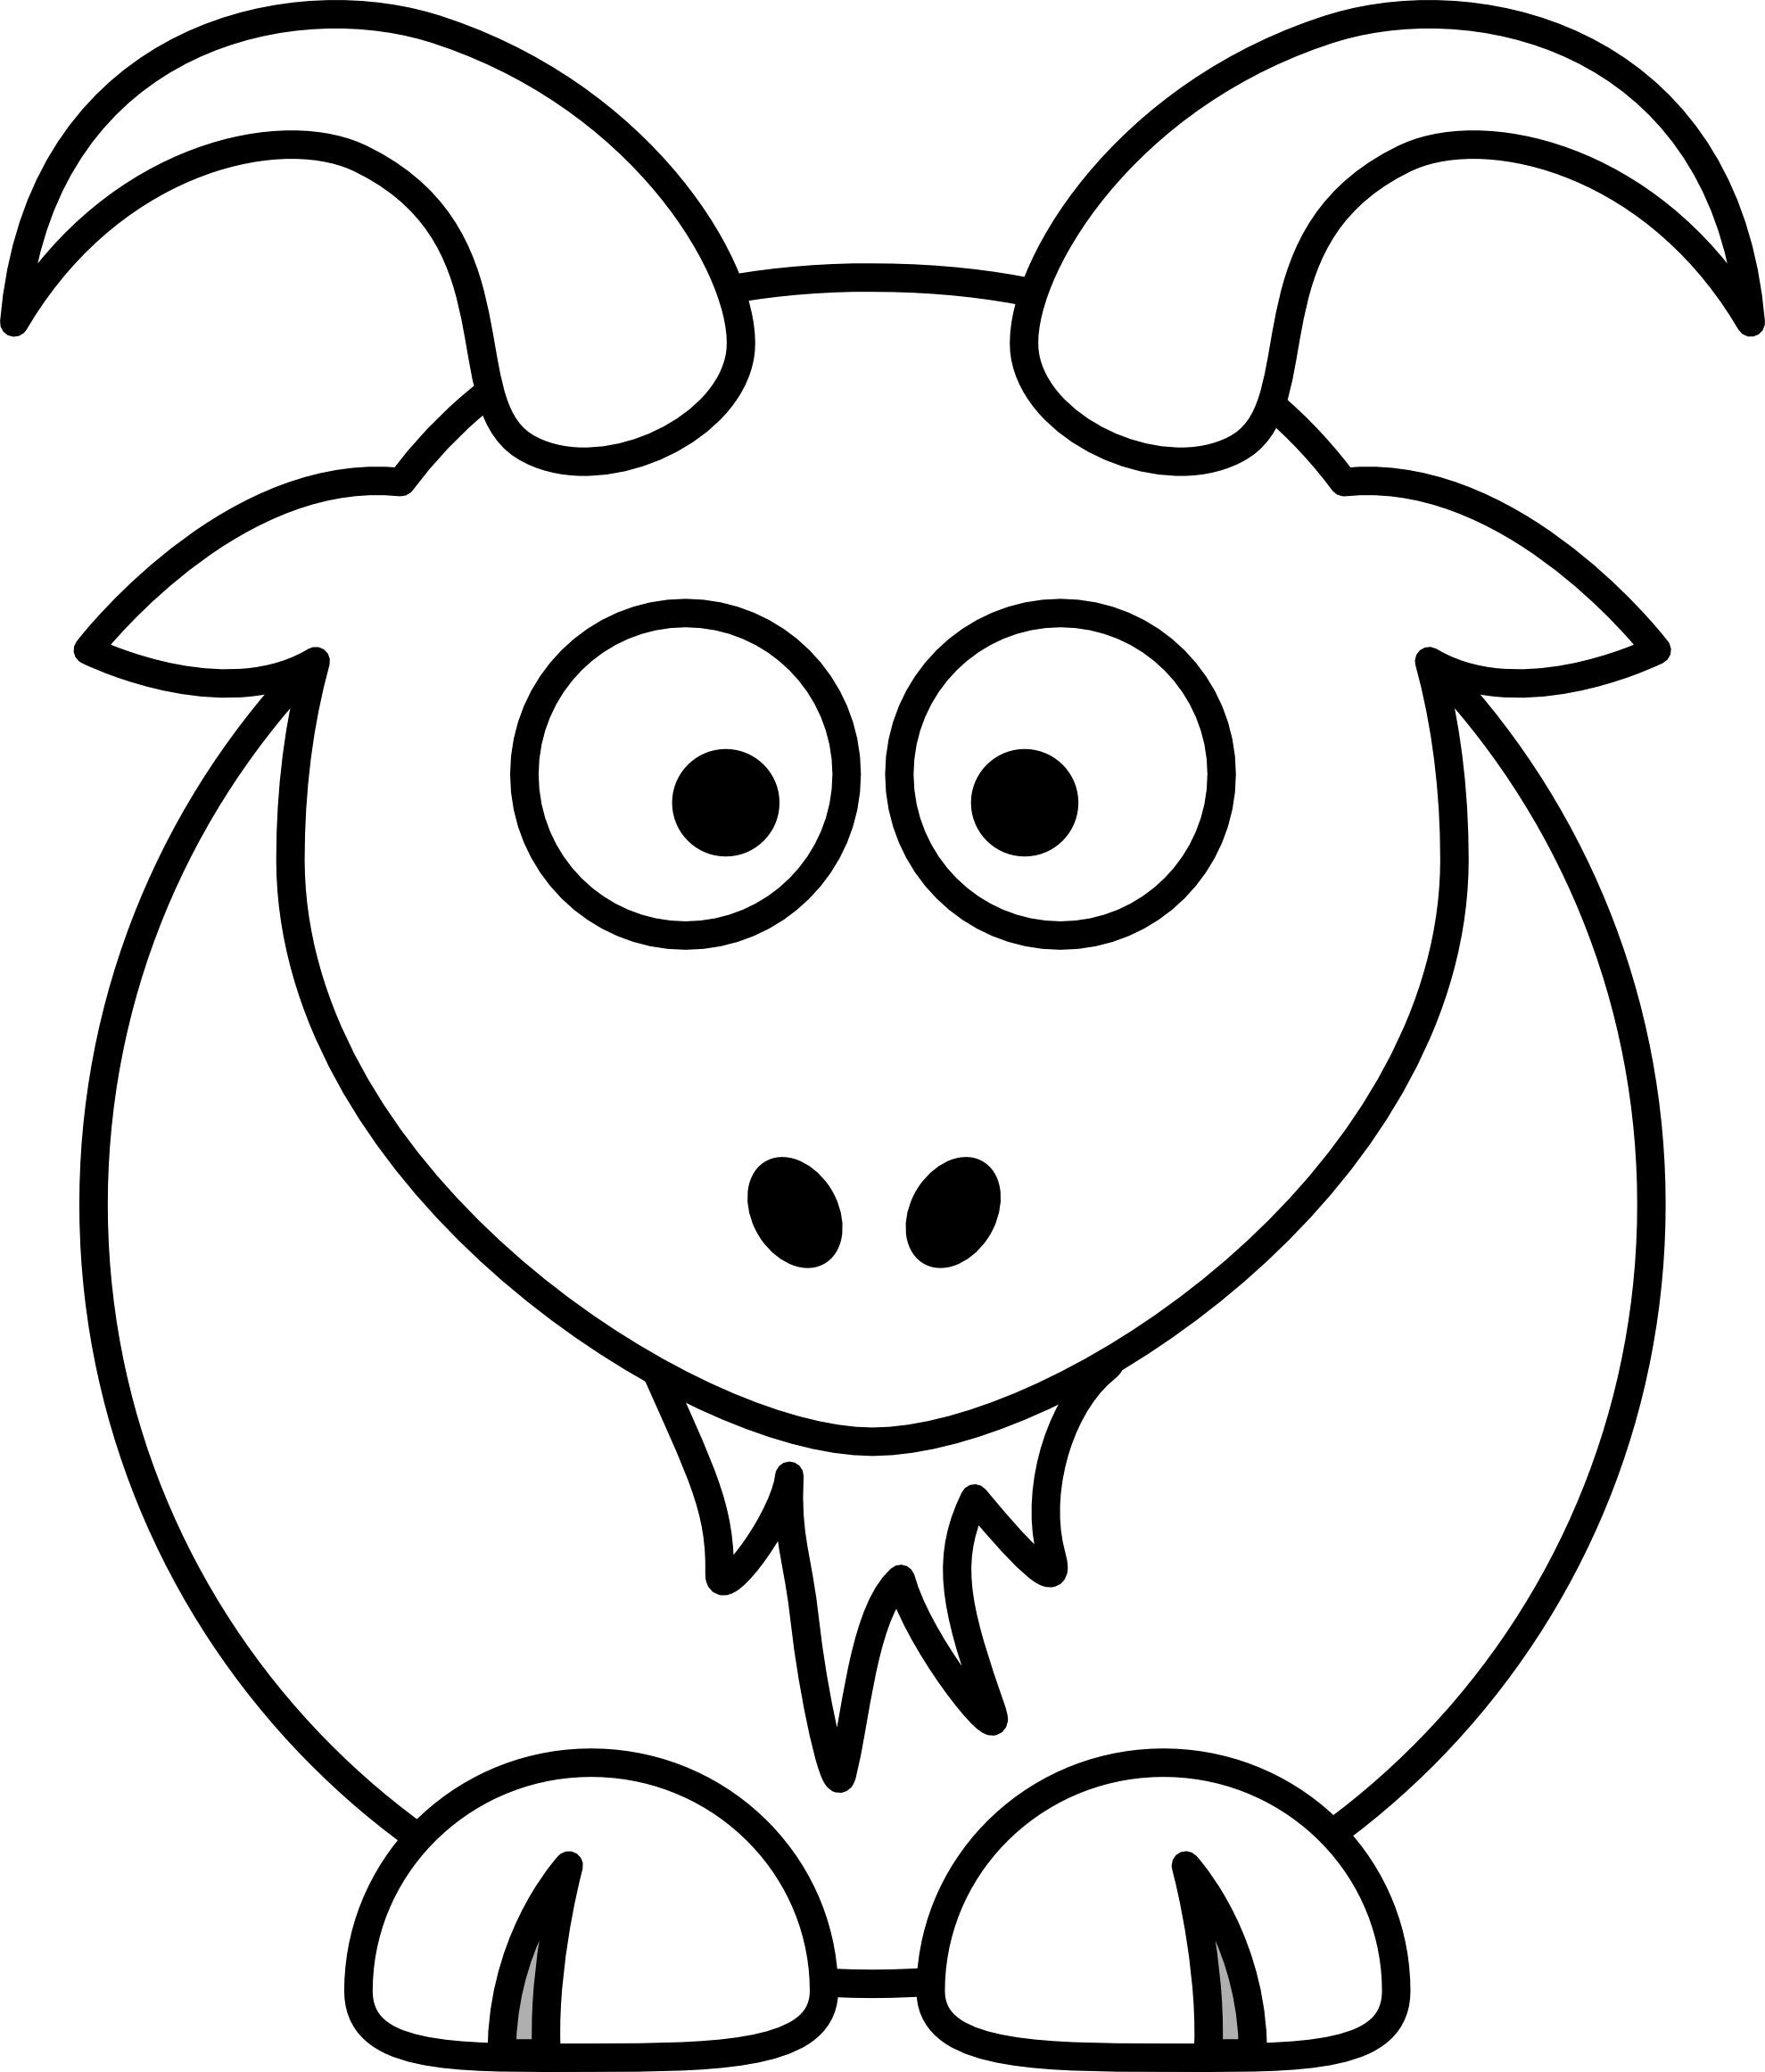 stuffed animal coloring pages animal stencil image by amy whisonant on coloring pages coloring animal pages stuffed